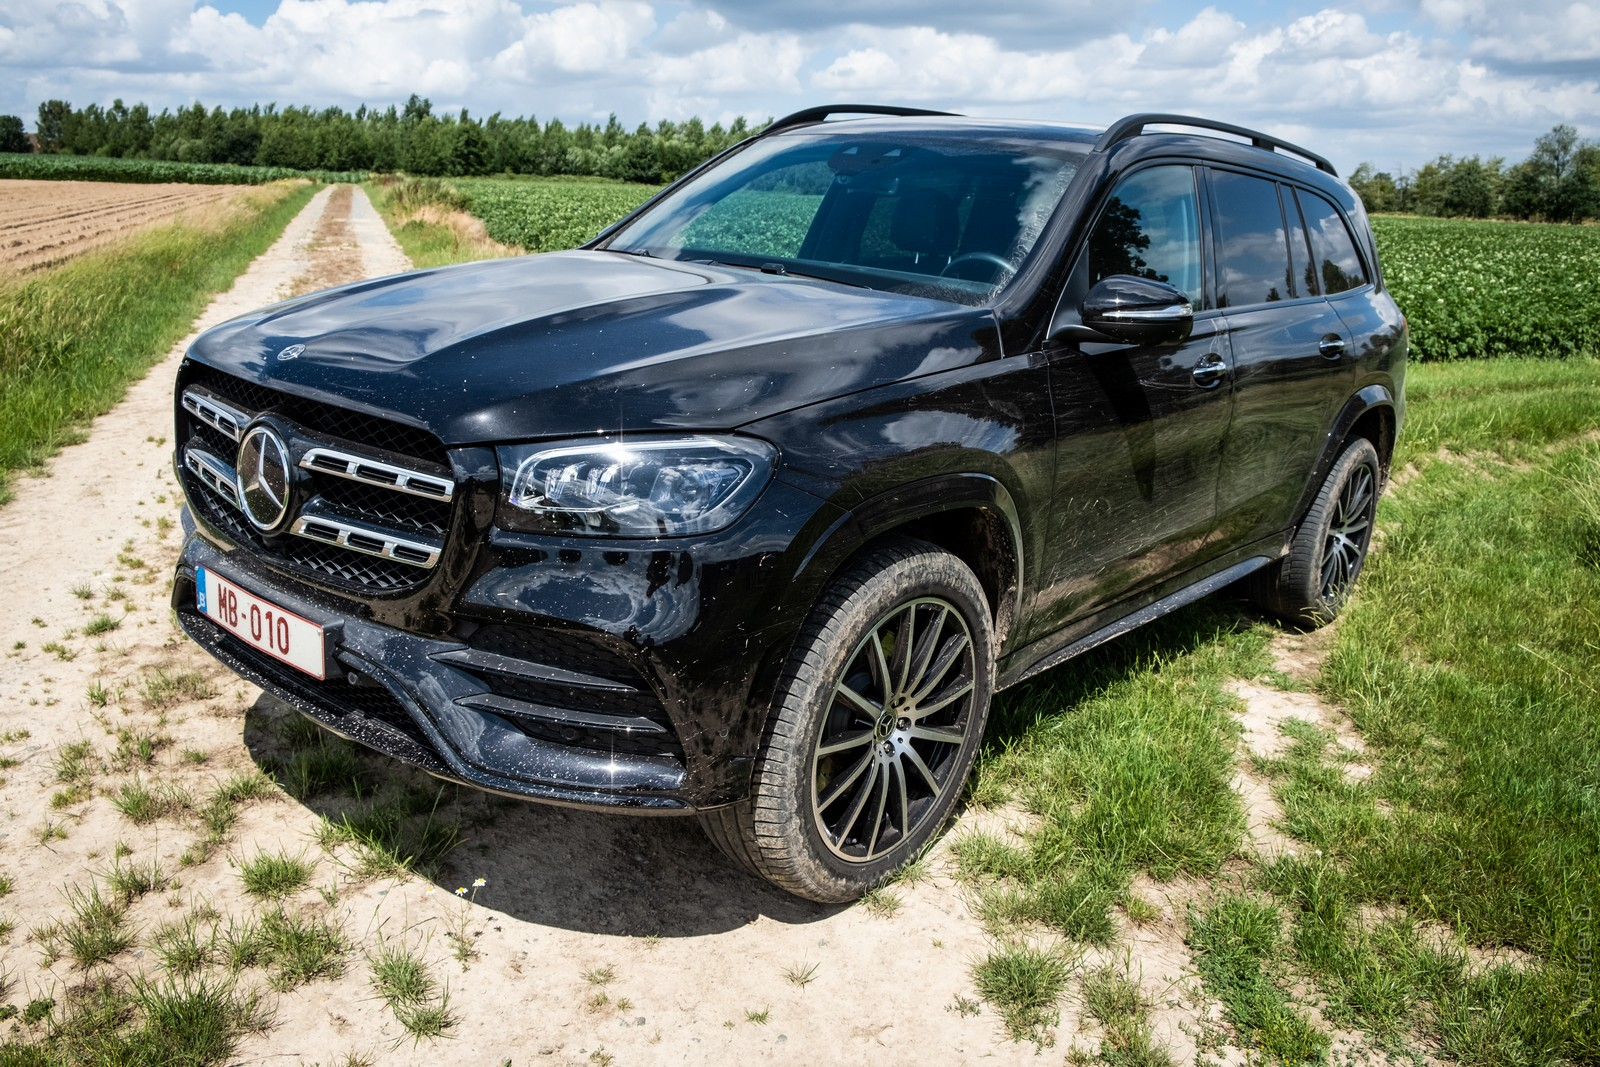 2020 Mercedes-Benz GLS 400d 4MATIC: 5 Things We Enjoyed